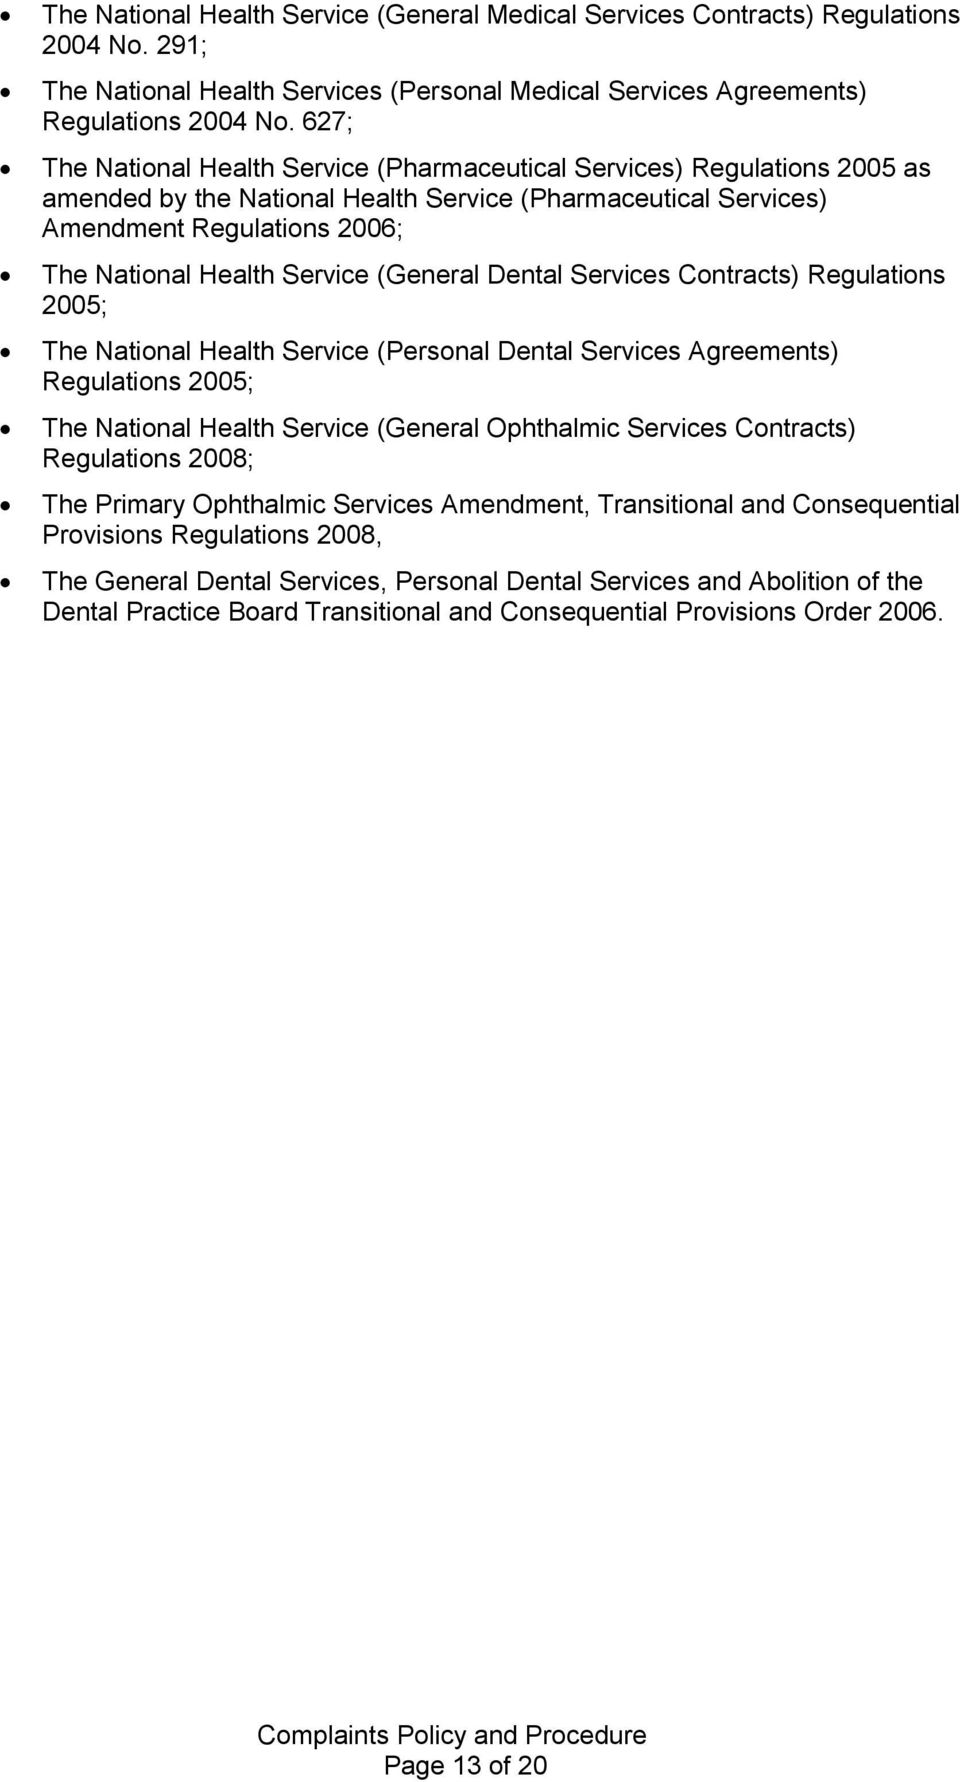 (General Dental Services Contracts) Regulations 2005; The National Health Service (Personal Dental Services Agreements) Regulations 2005; The National Health Service (General Ophthalmic Services